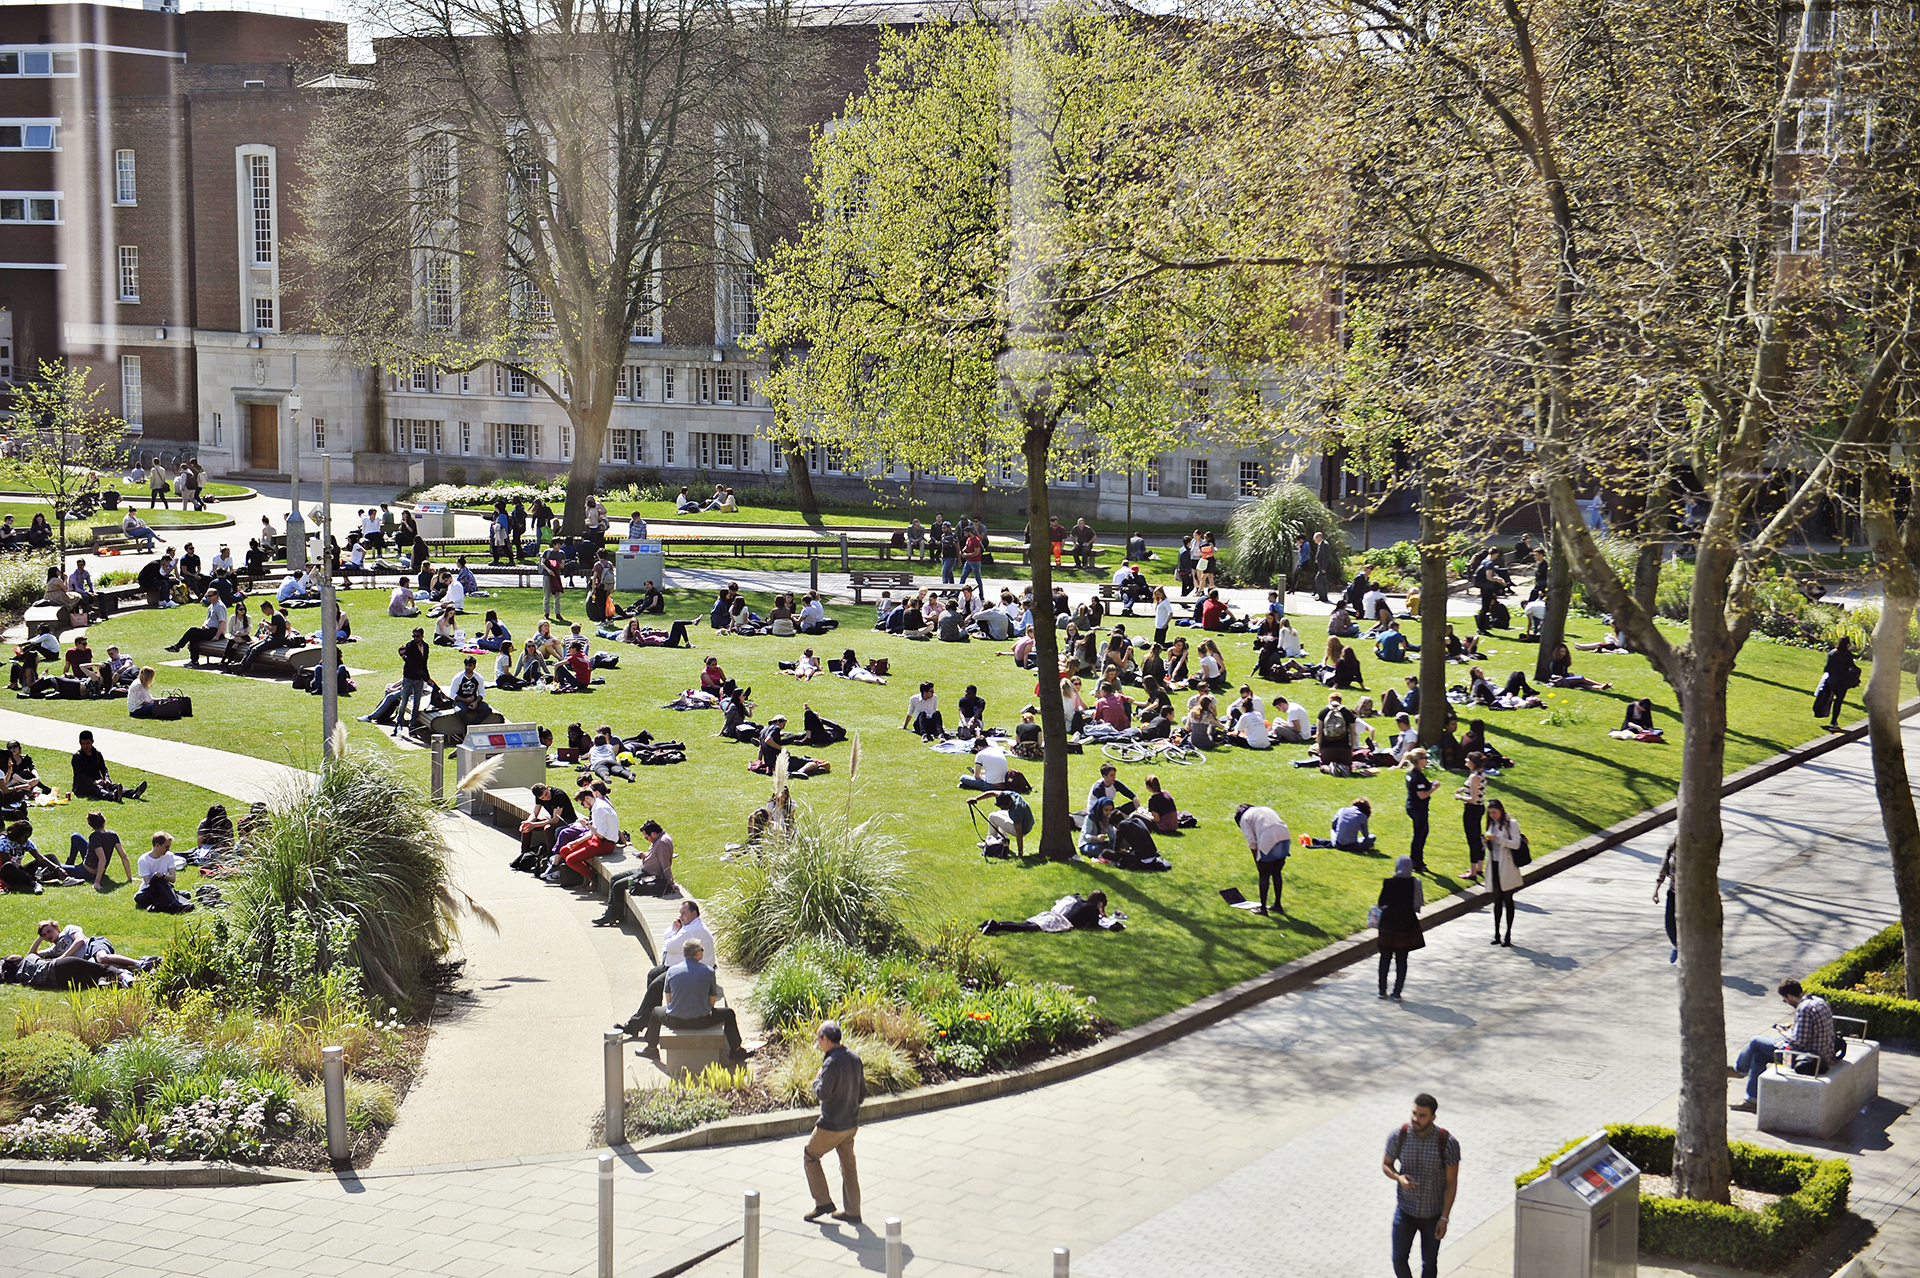 Students relaxing outside on campus at The University of Manchester